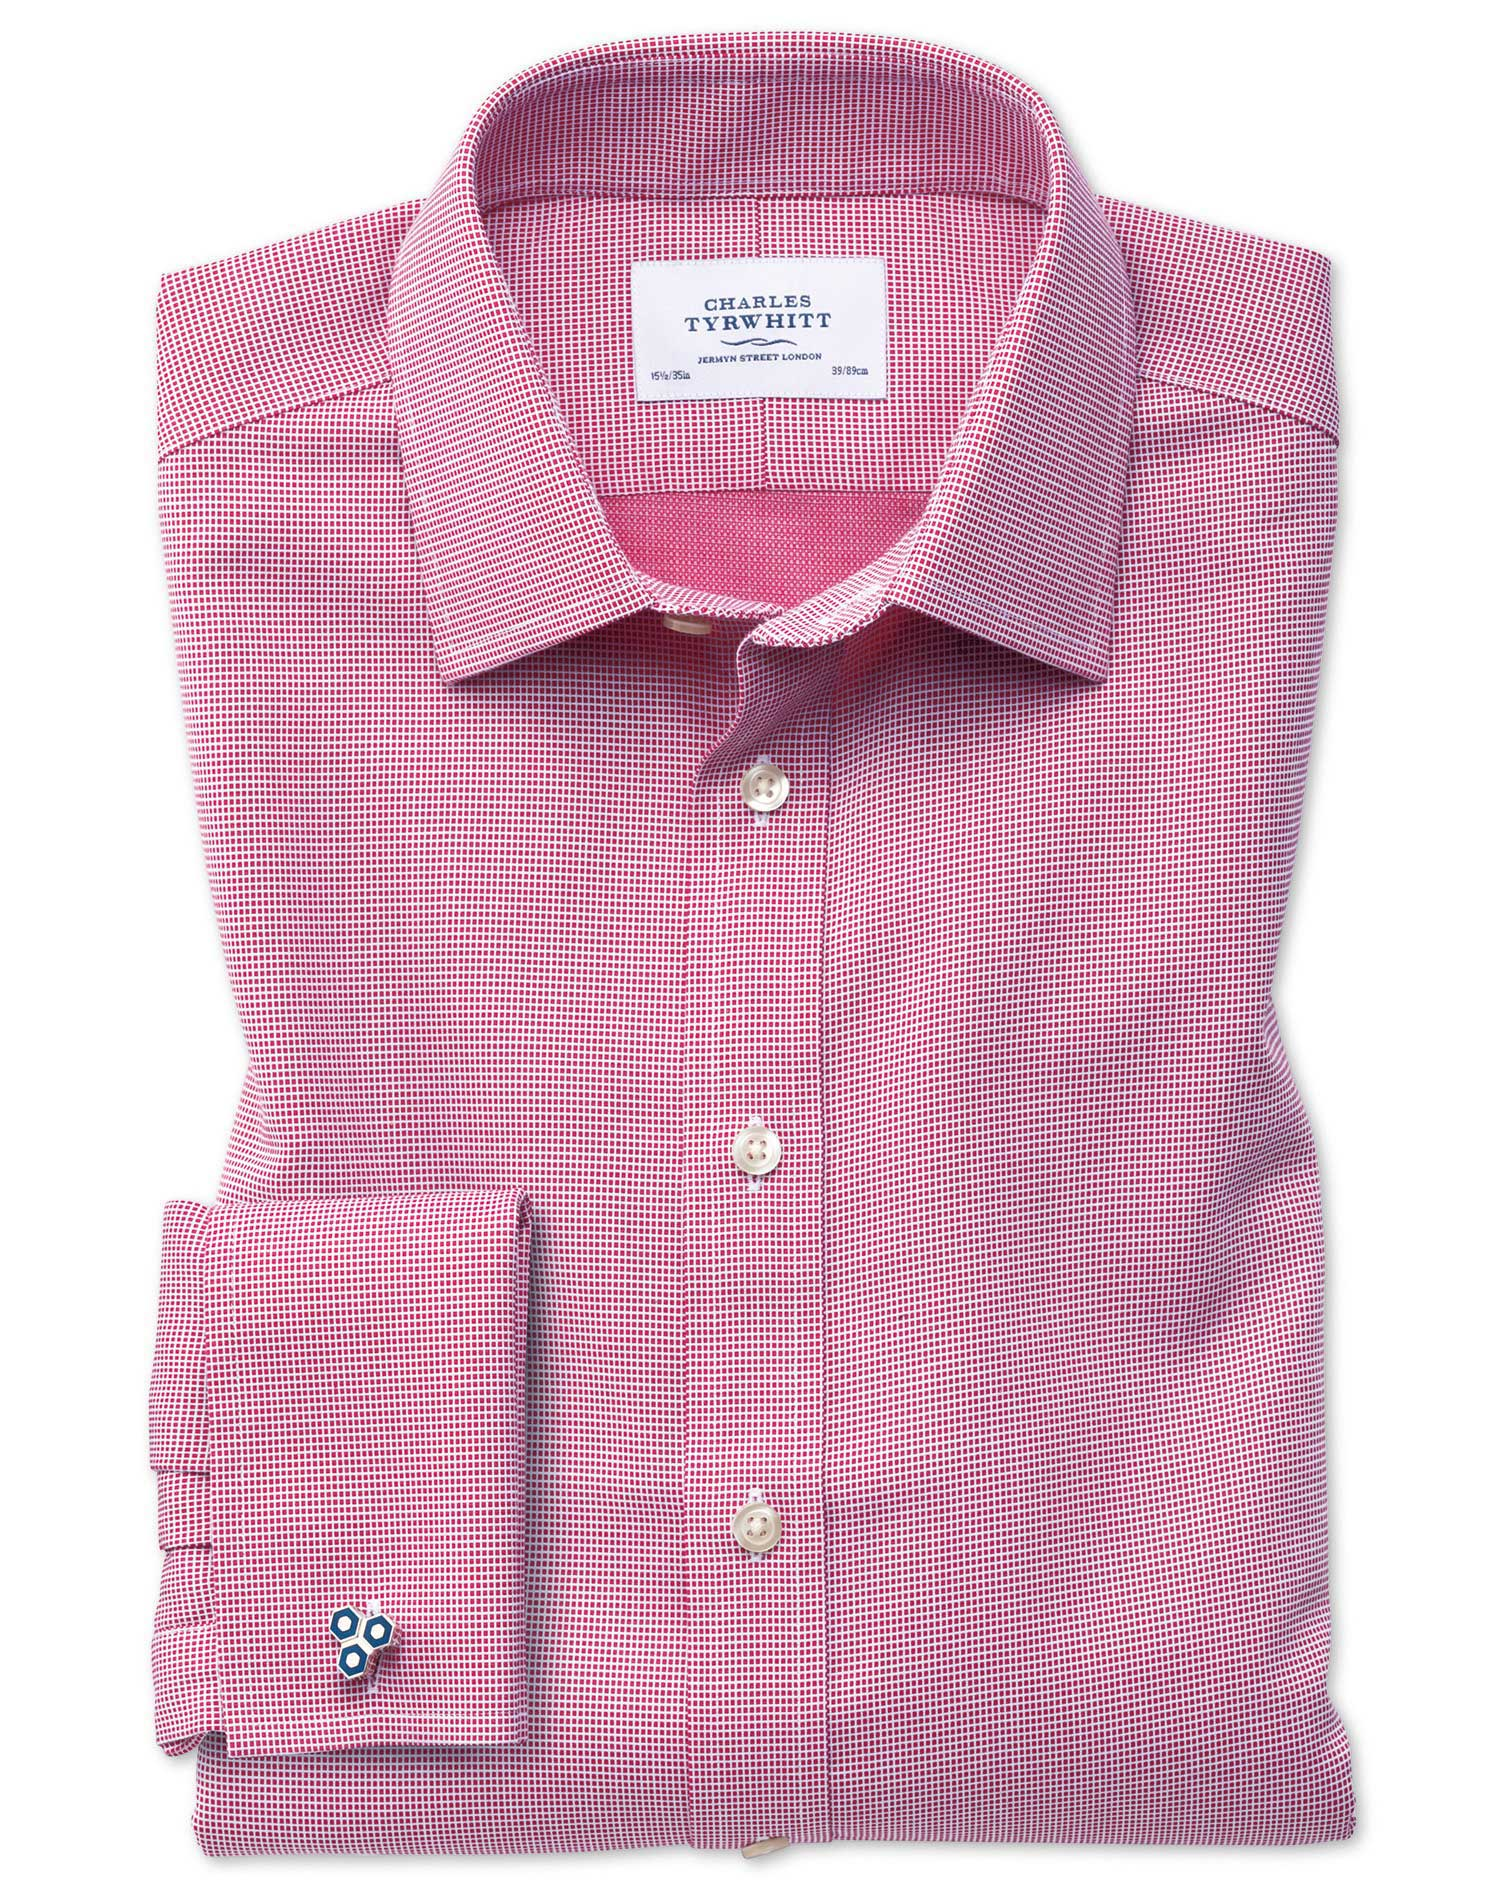 Extra Slim Fit Non-Iron Square Weave Magenta Cotton Formal Shirt Single Cuff Size 17/37 by Charles T